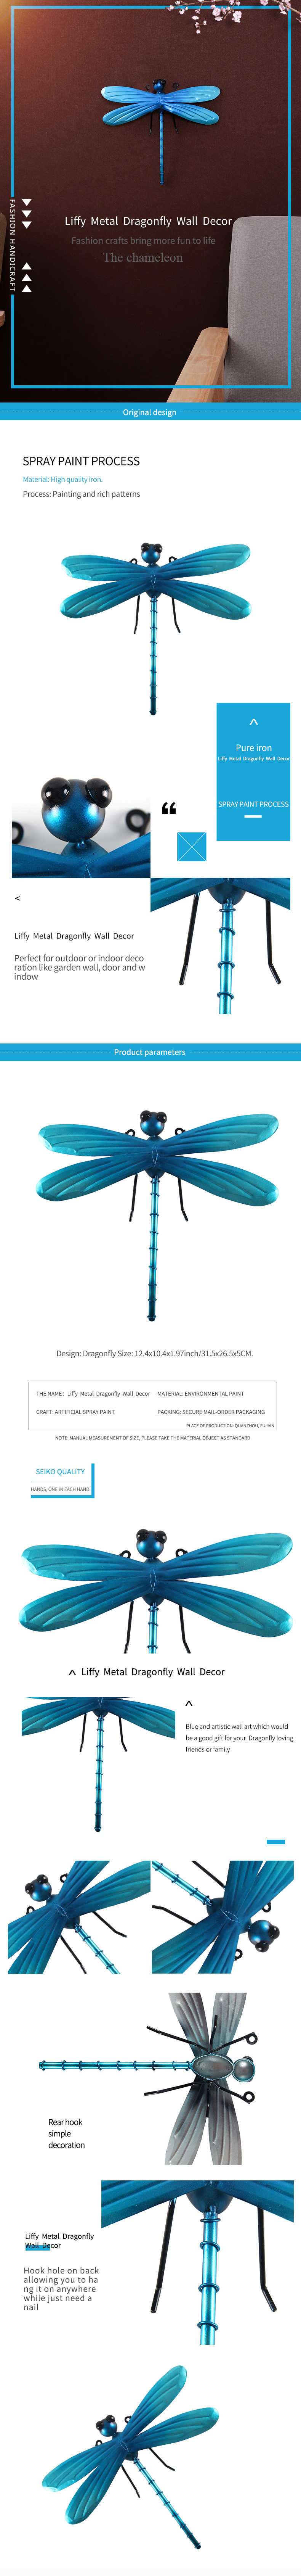 Metal Dragonfly Fairy Wall Decoration for Garden Decoration Outdoor Accessories Sculpture in Miniature Garden Statues